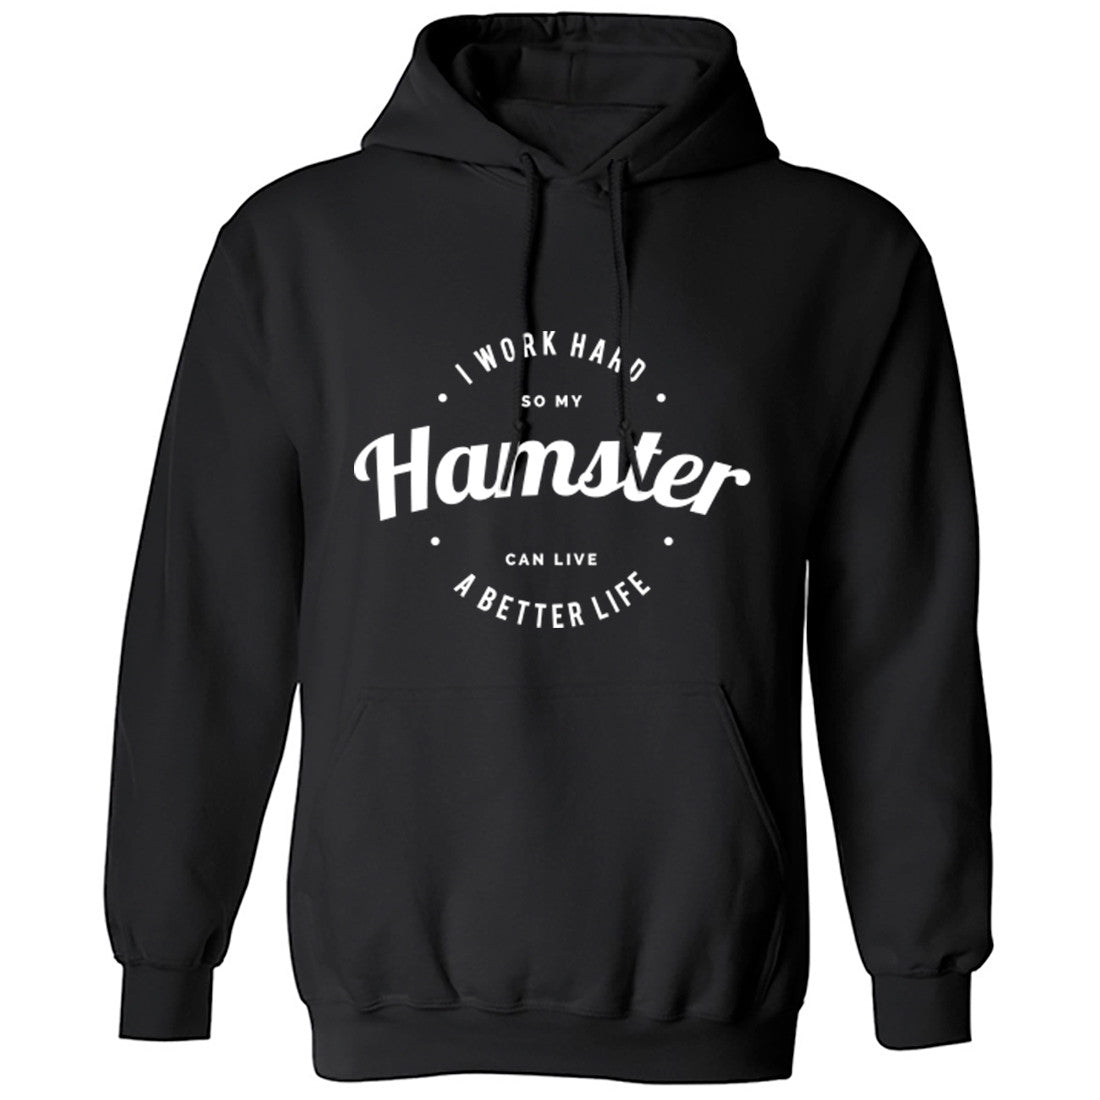 I Work Hard So My Hamster Can Live A Better Life Unisex Hoodie K0434 - Illustrated Identity Ltd.